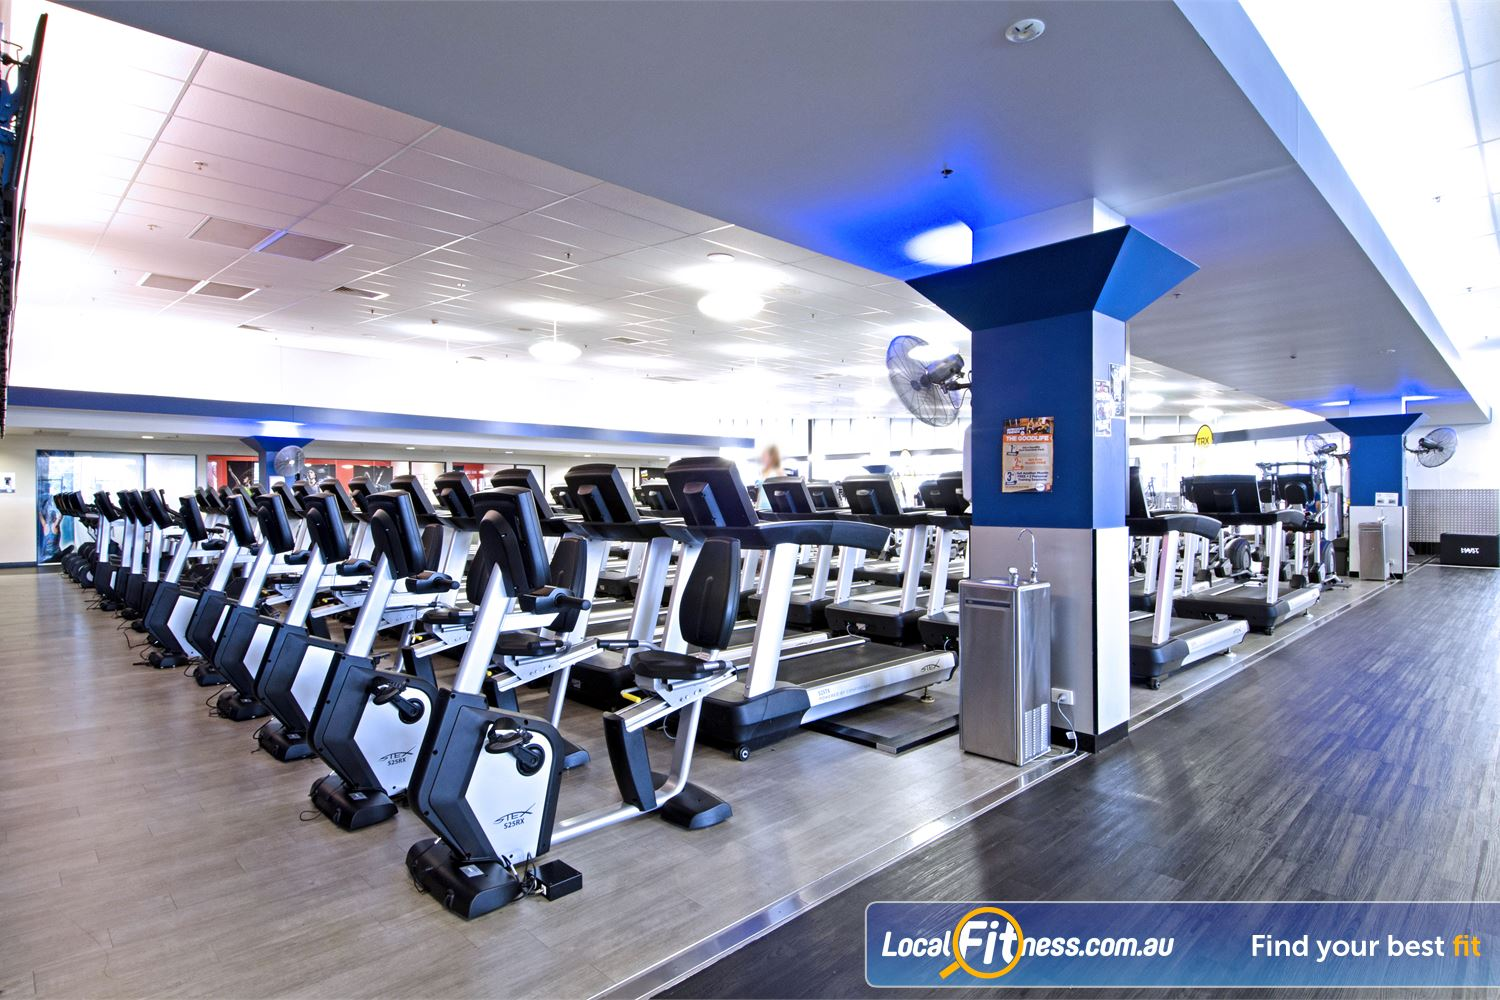 Goodlife Health Clubs Near Geebung Goodlife Chermside gym provides multiple cardio machines so you don't have to wait.